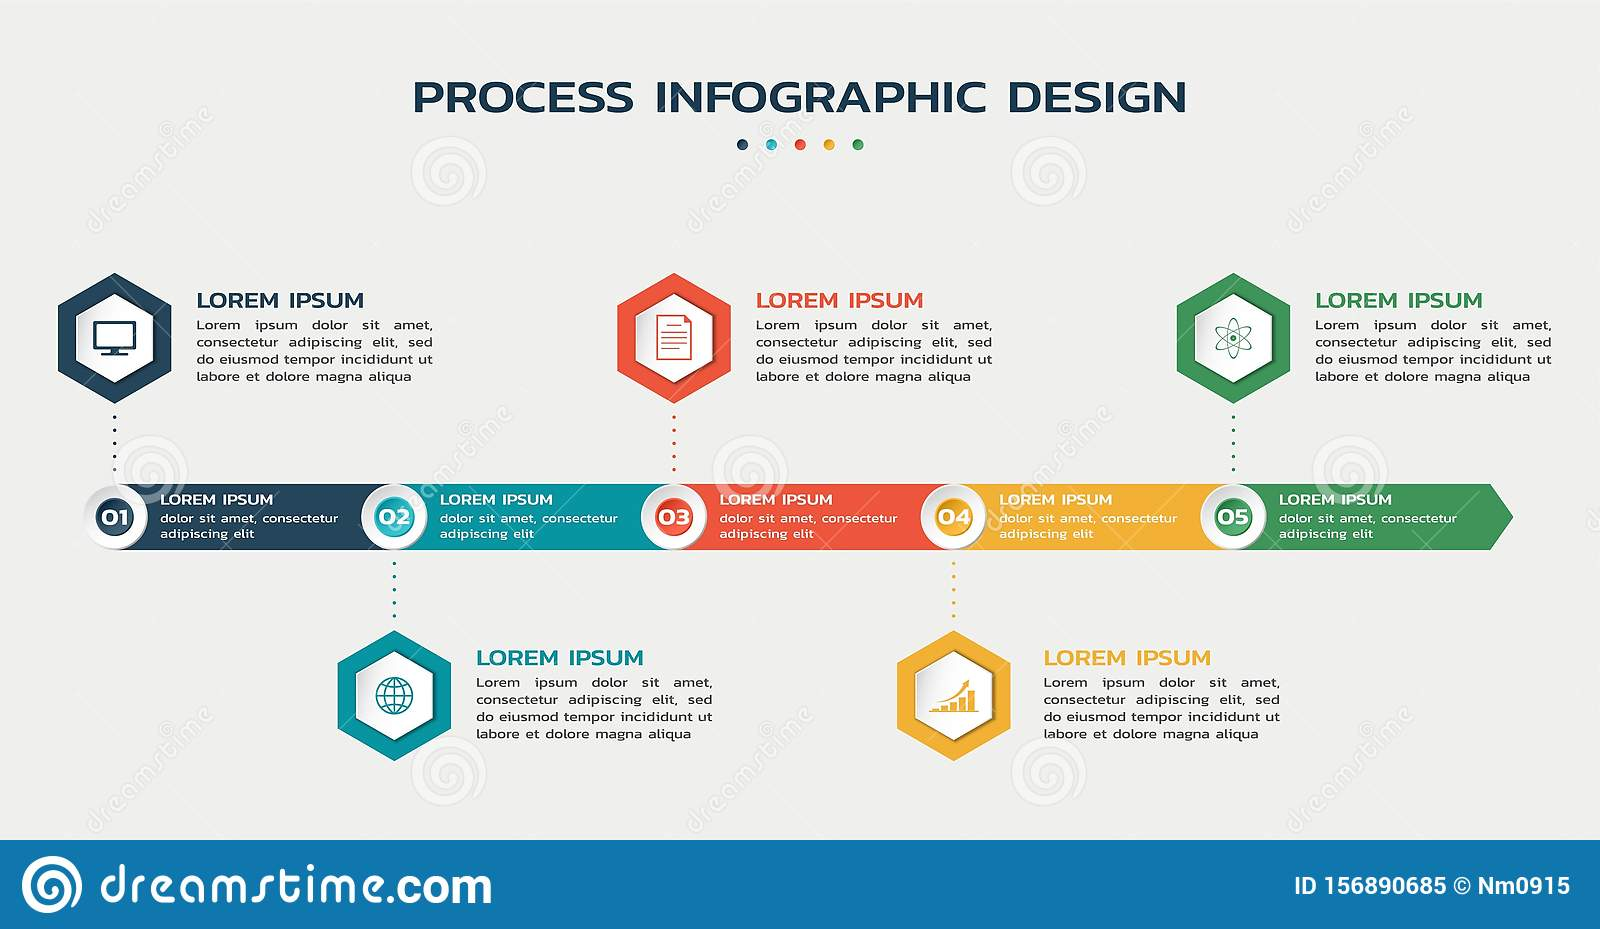 Process infographic template. five steps flowchart with hexagons with icons and text